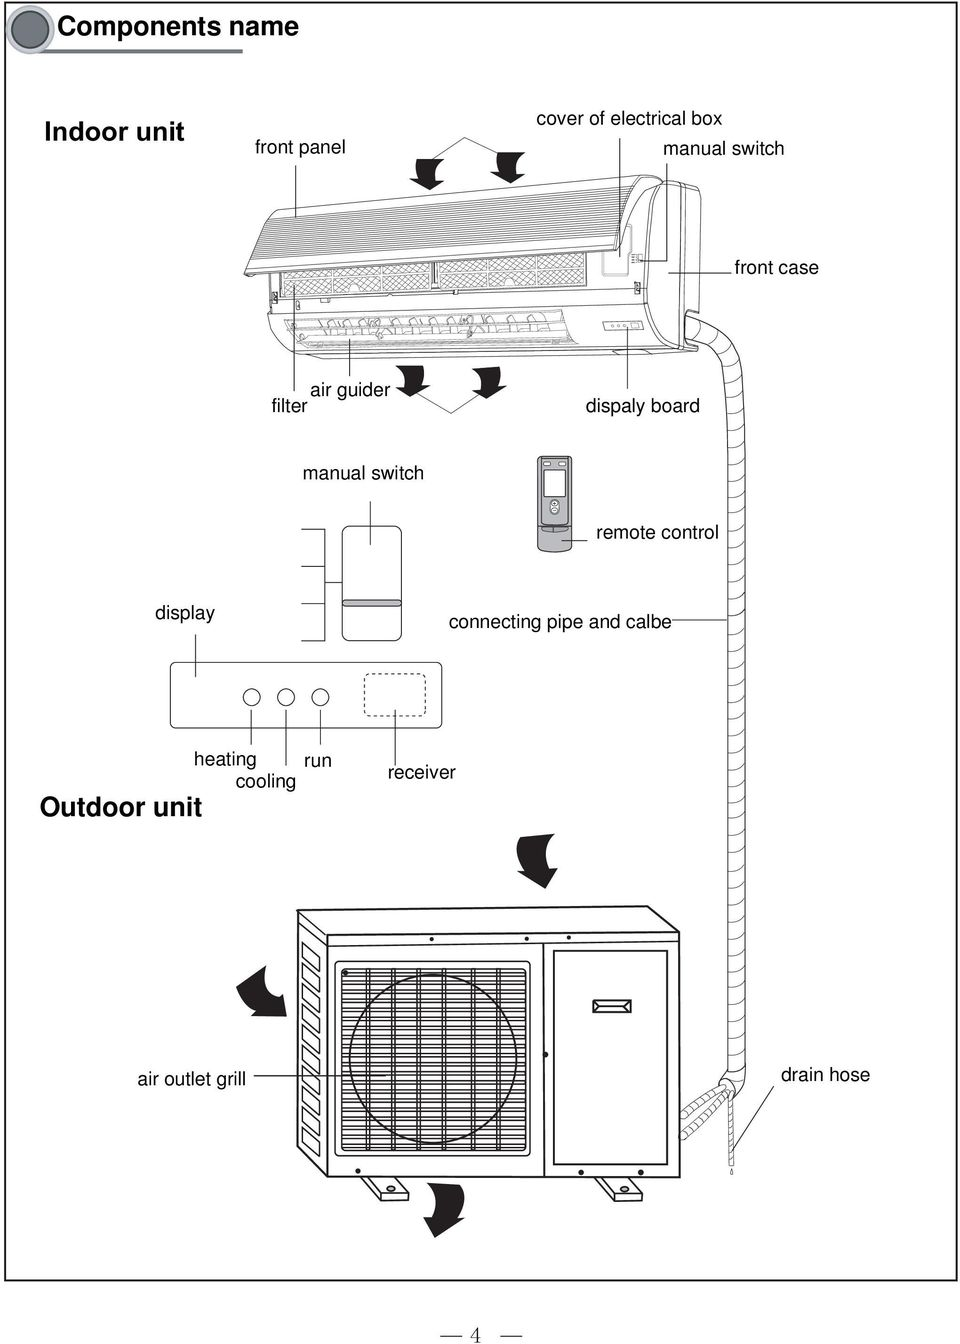 Technical Service Manual. for 13SEER Comfortstar Plus Air